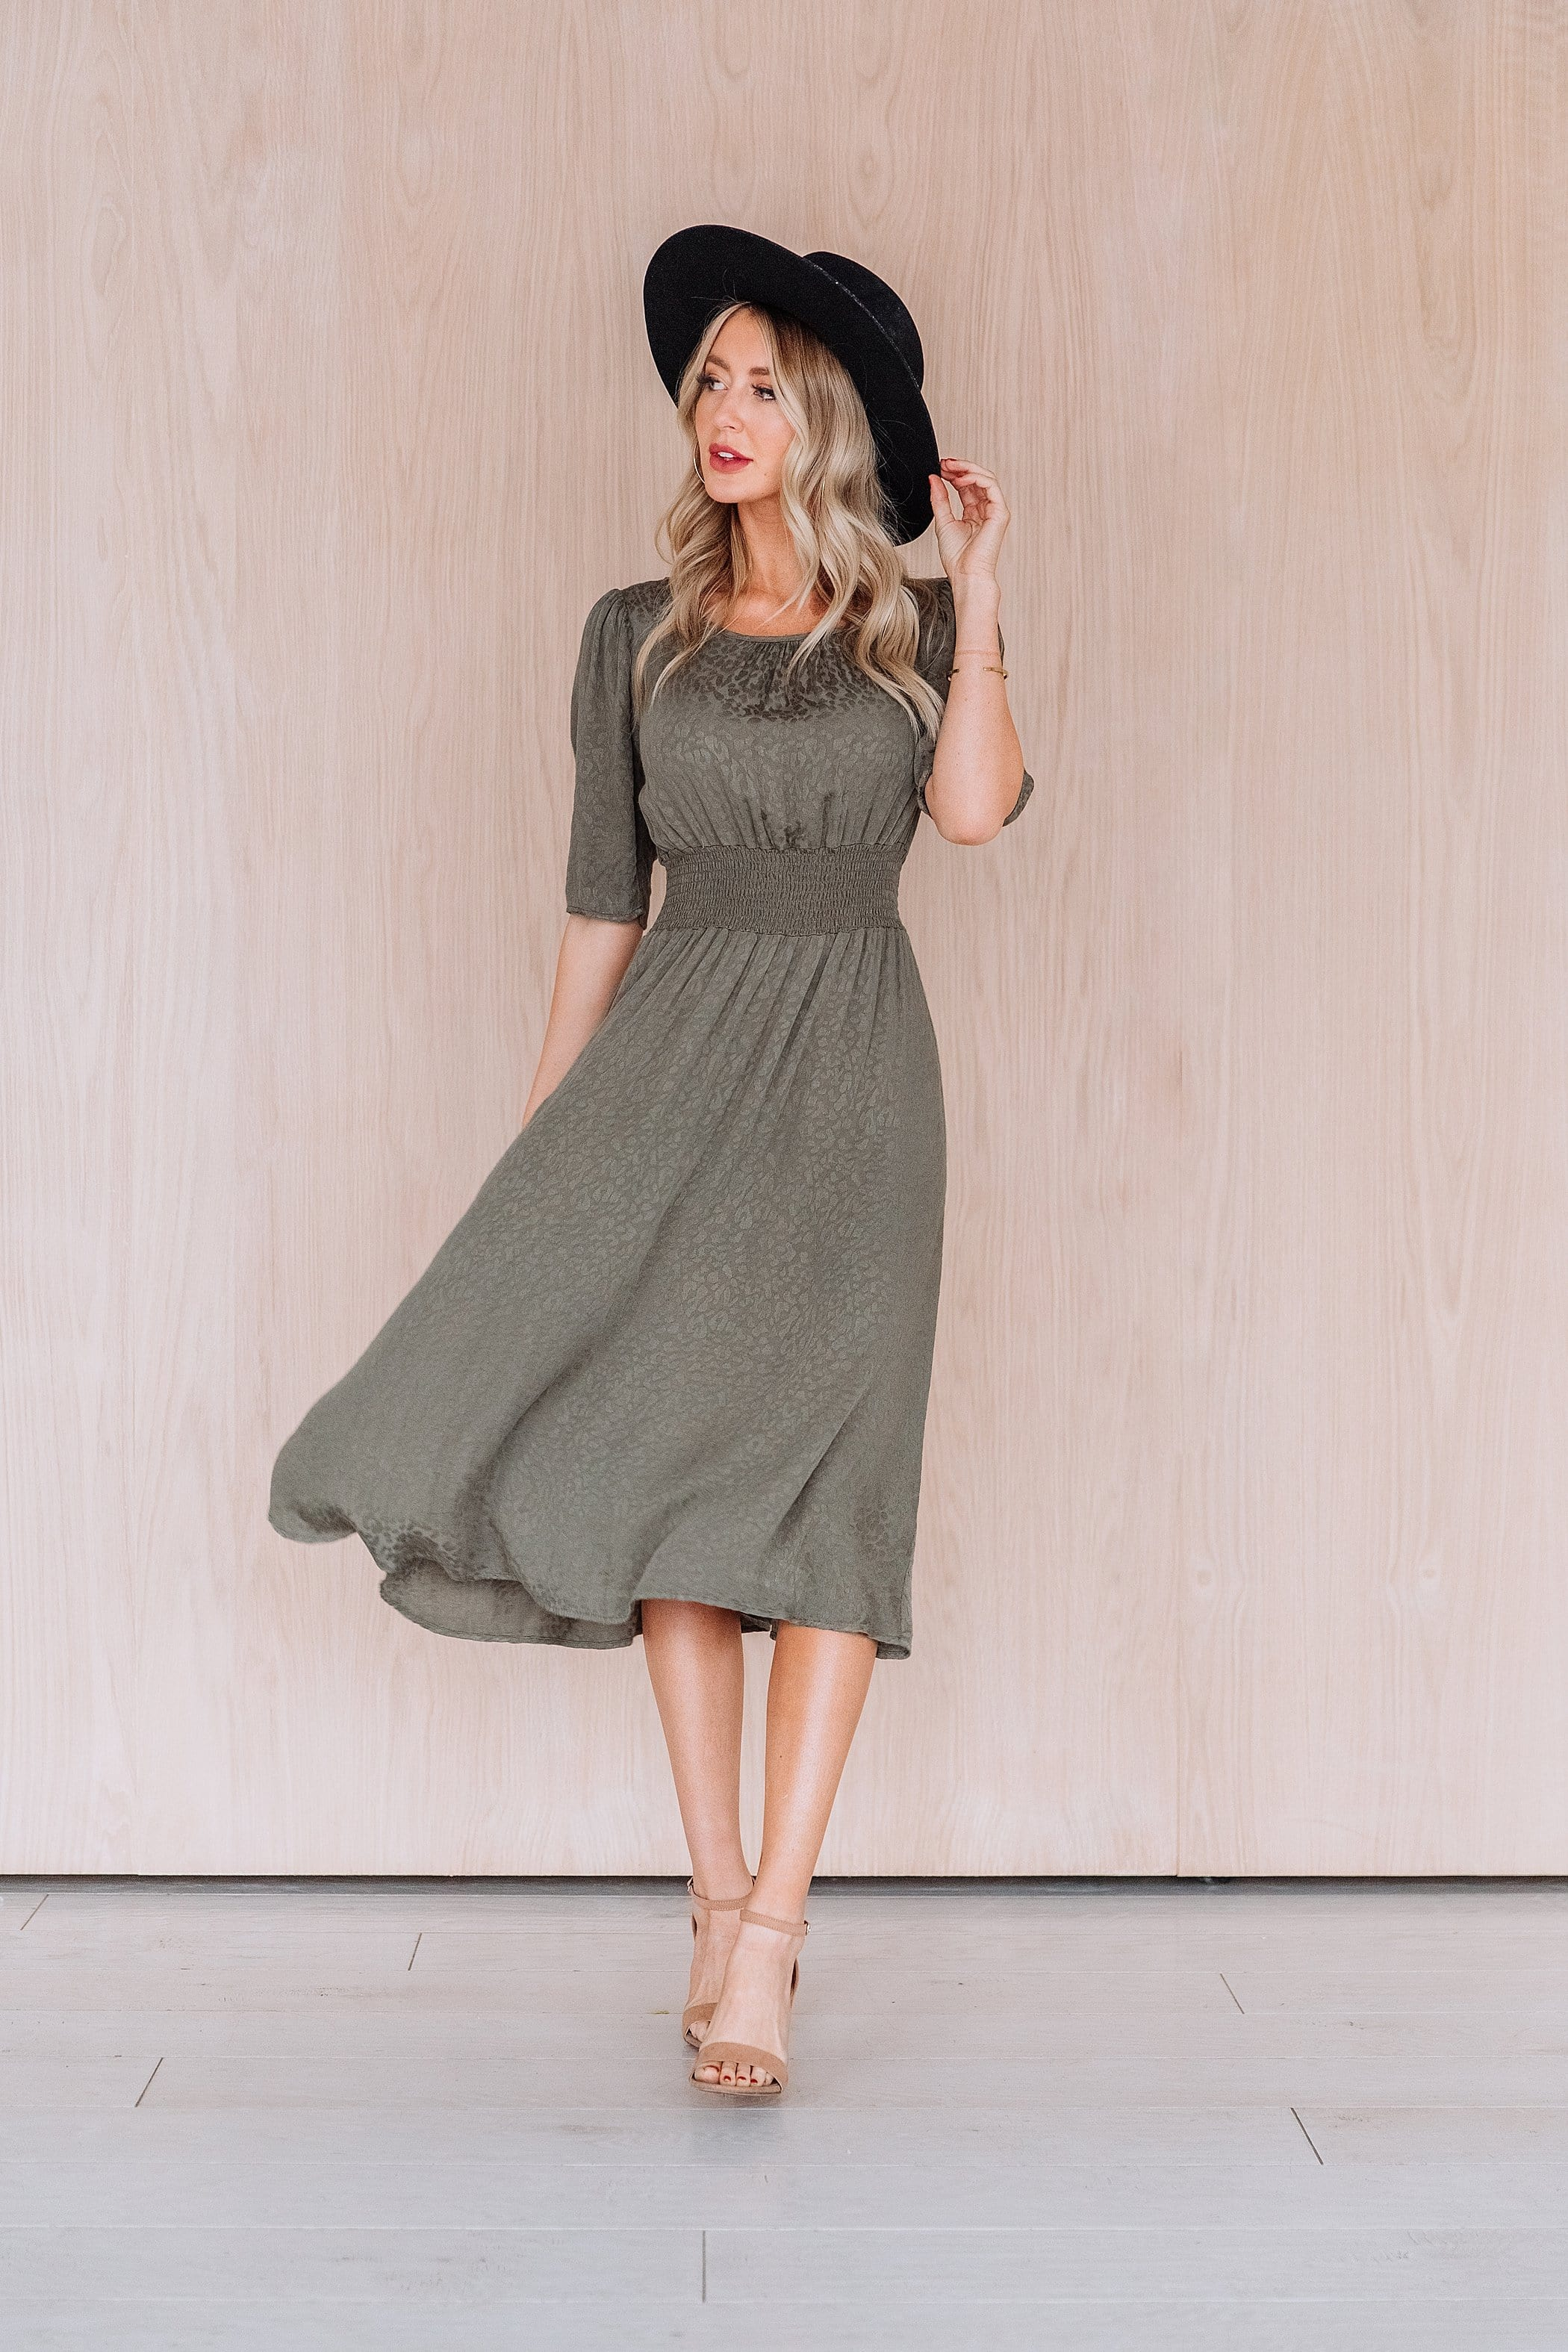 The Finch Midi Dress in Olive